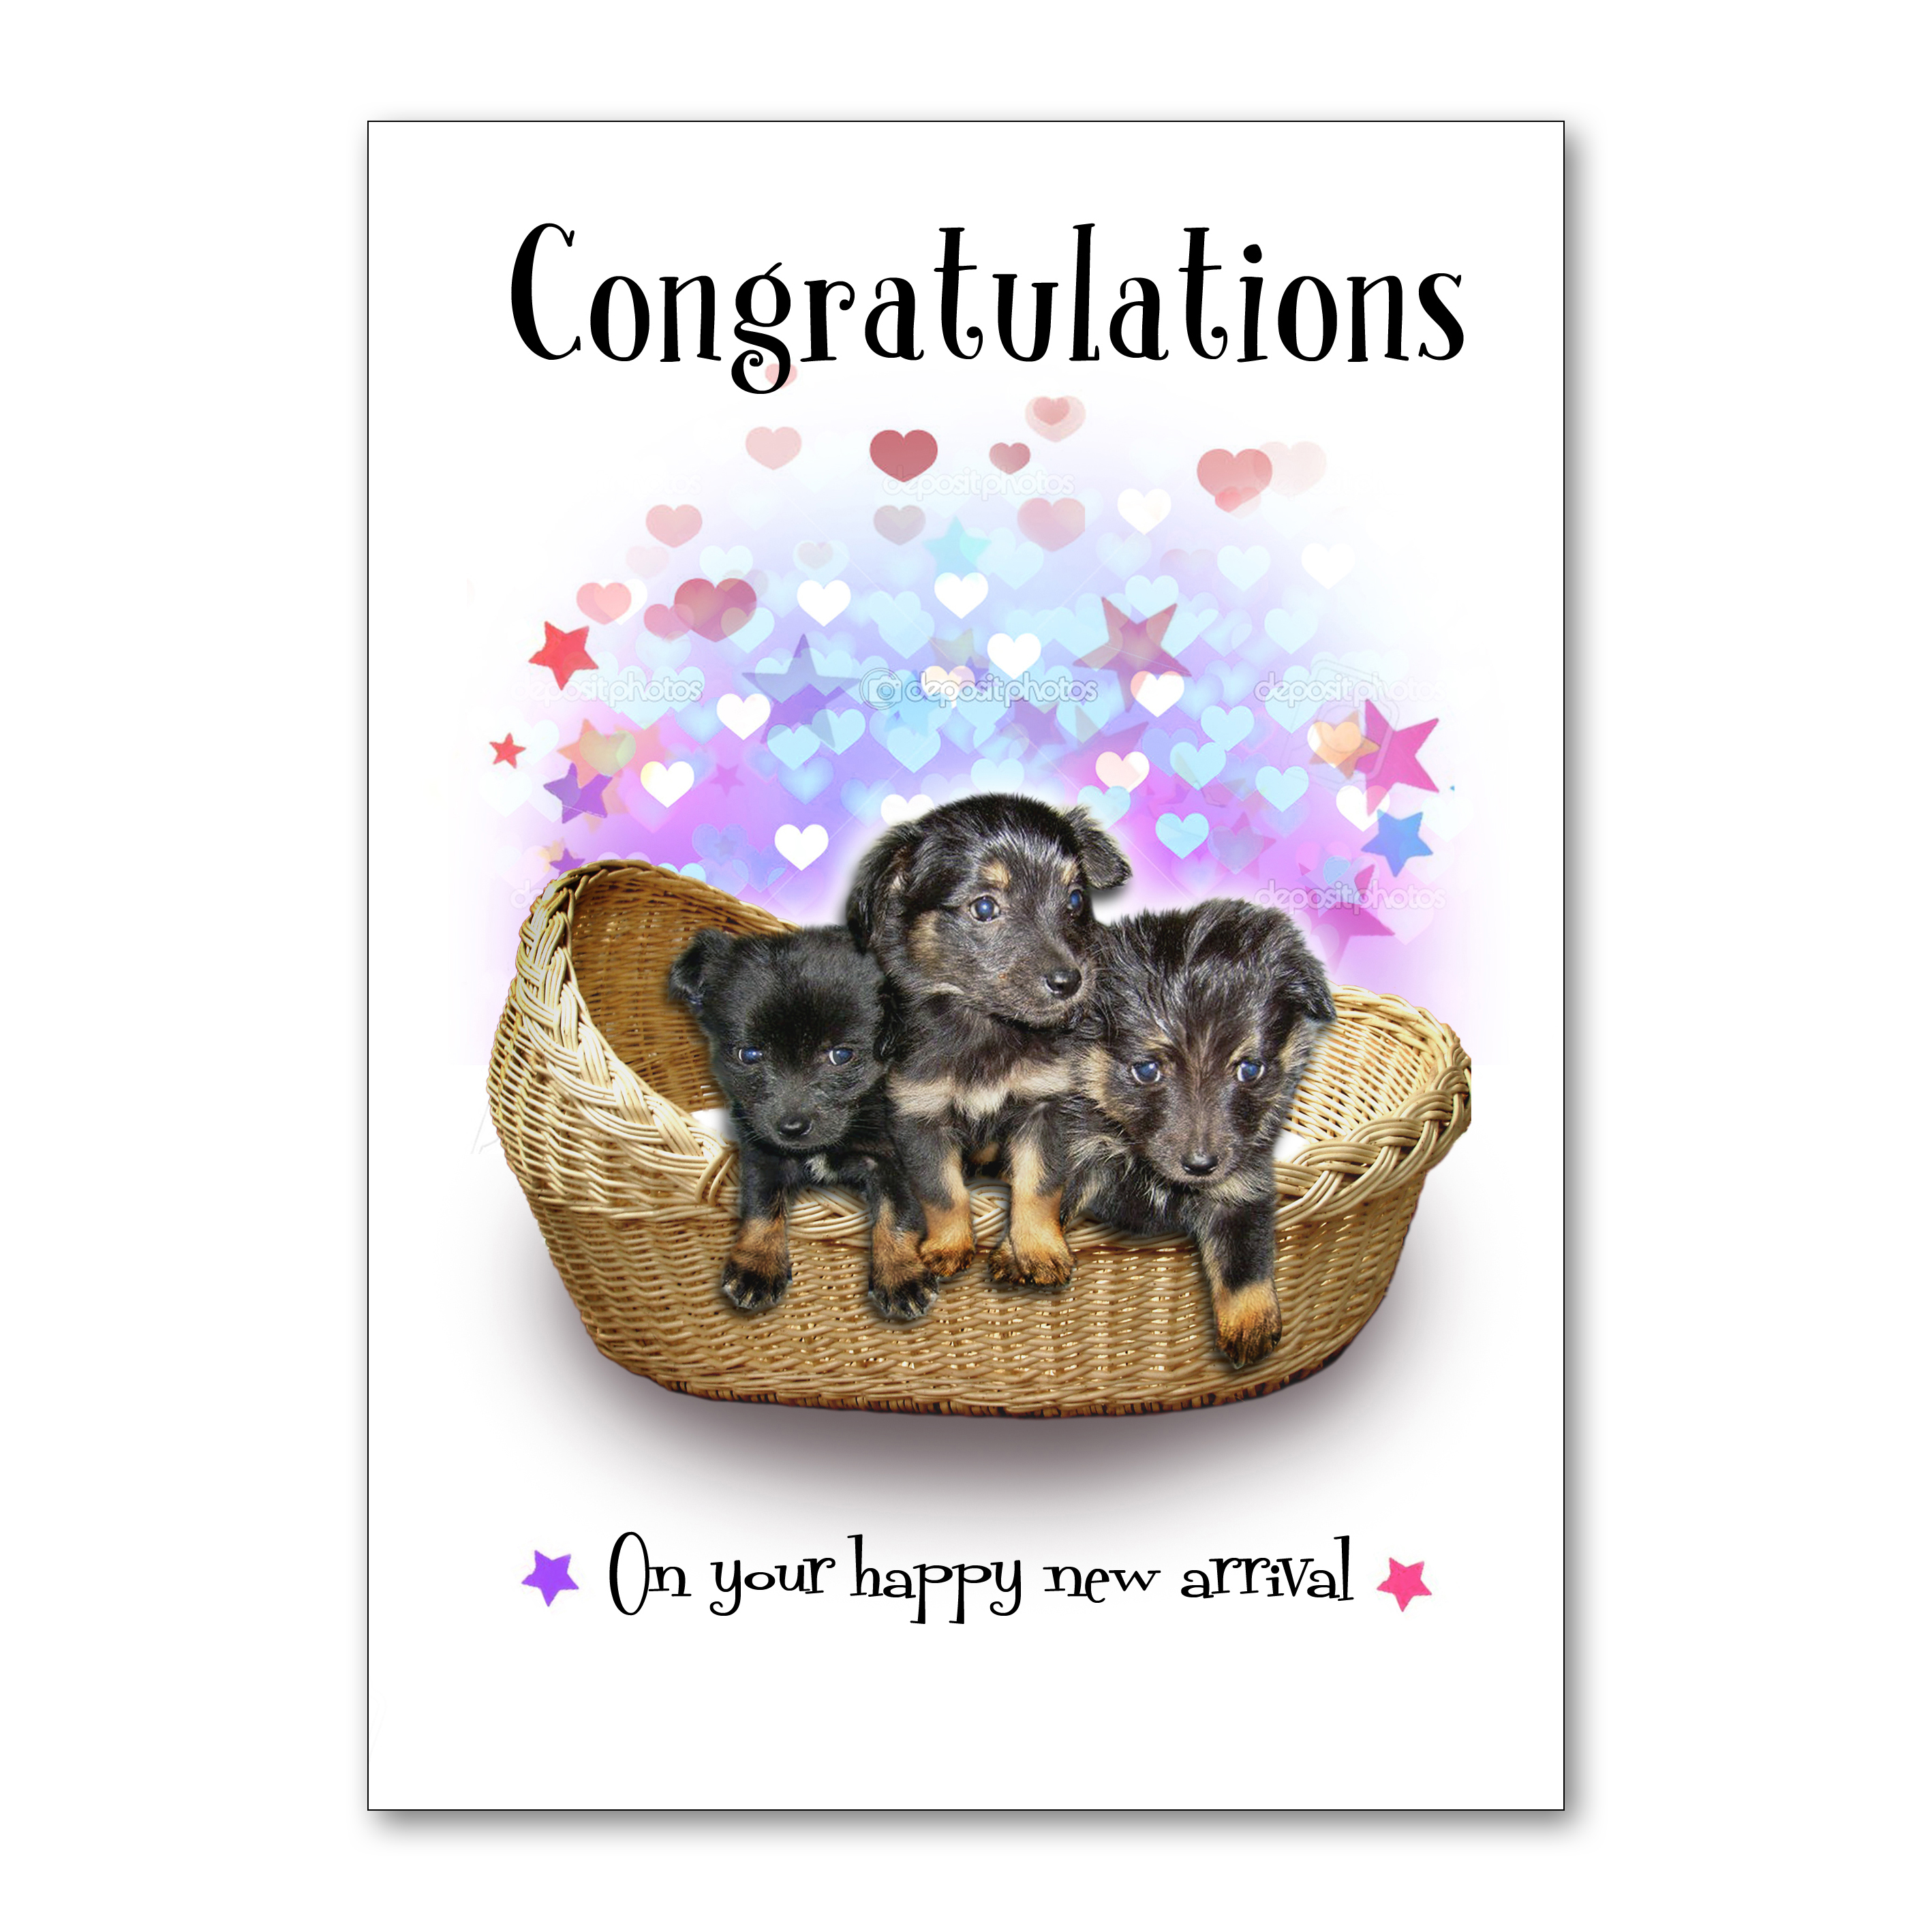 Congratulations on your new arrival new baby greetings card congratulations on your new arrival new baby greetings card m4hsunfo